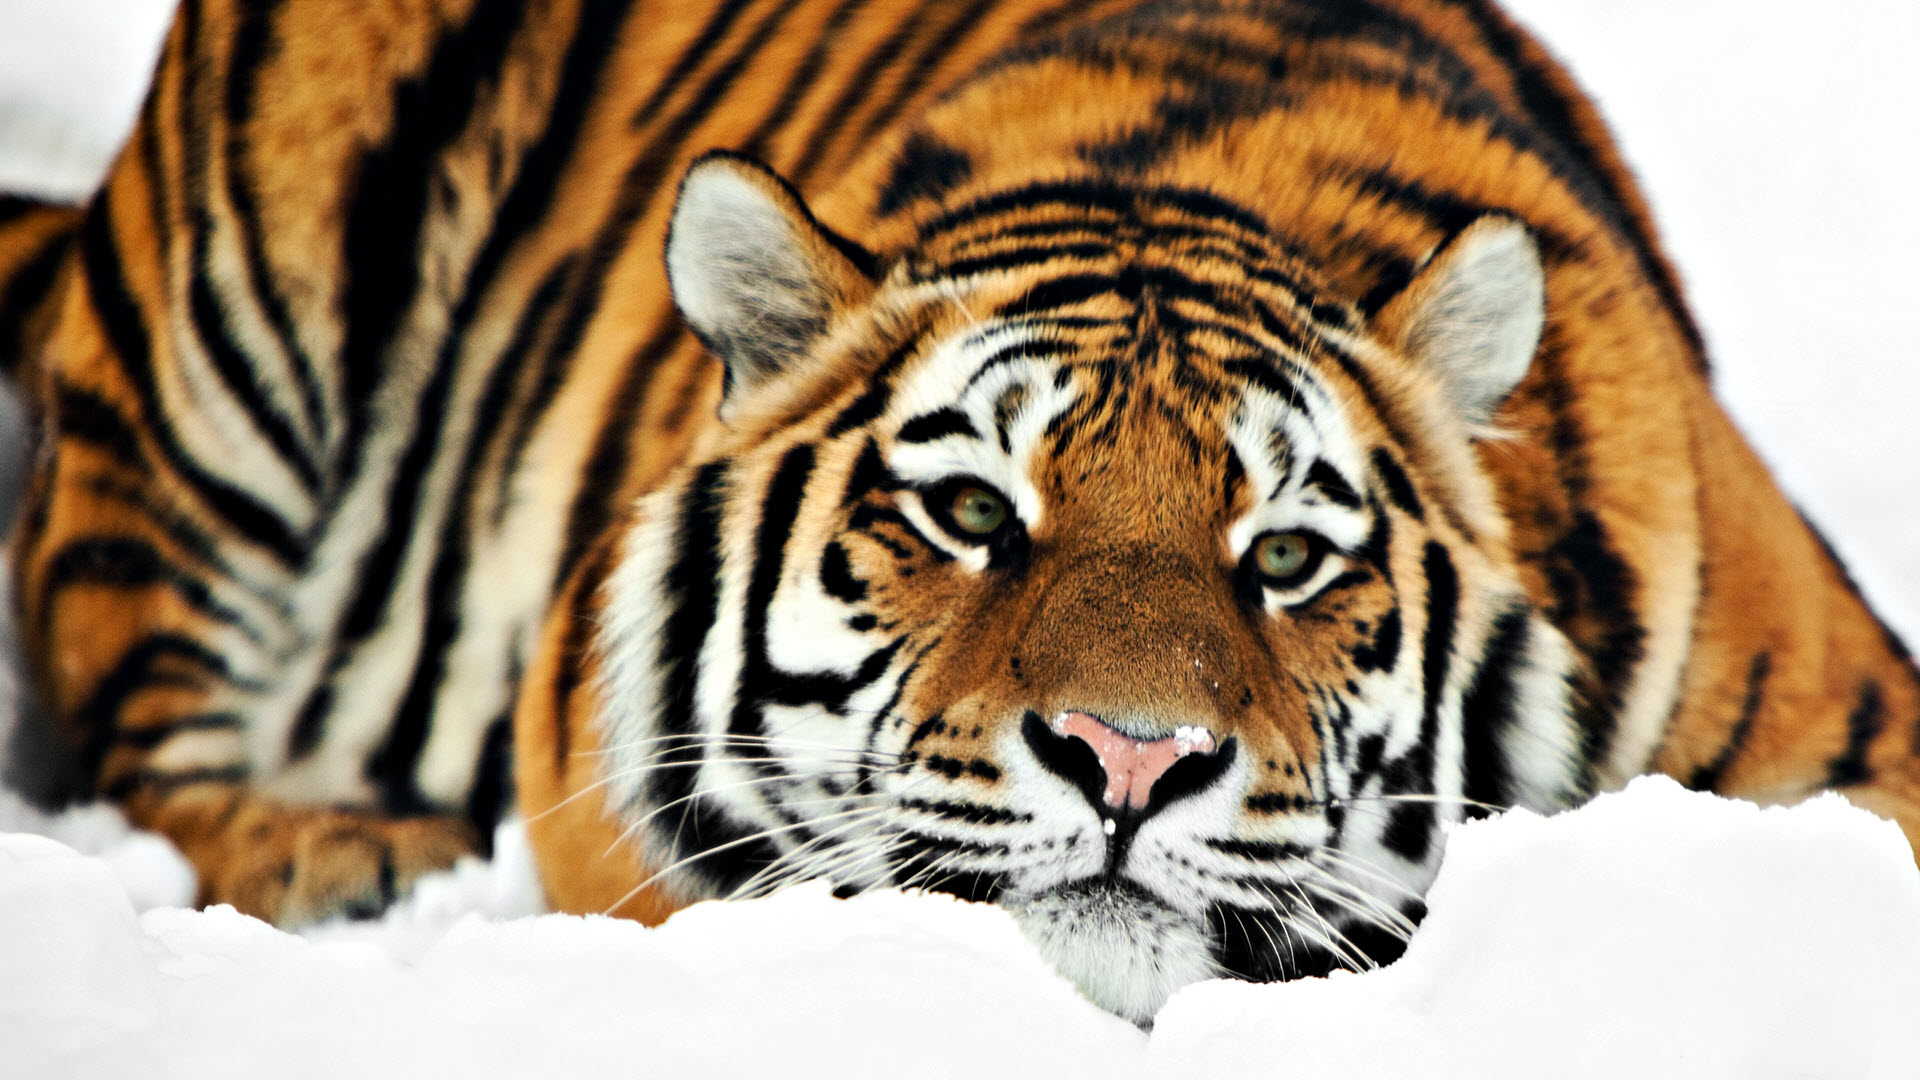 Wonderful Wallpaper High Resolution Tiger - 3057_tiger  Image_426047.jpg